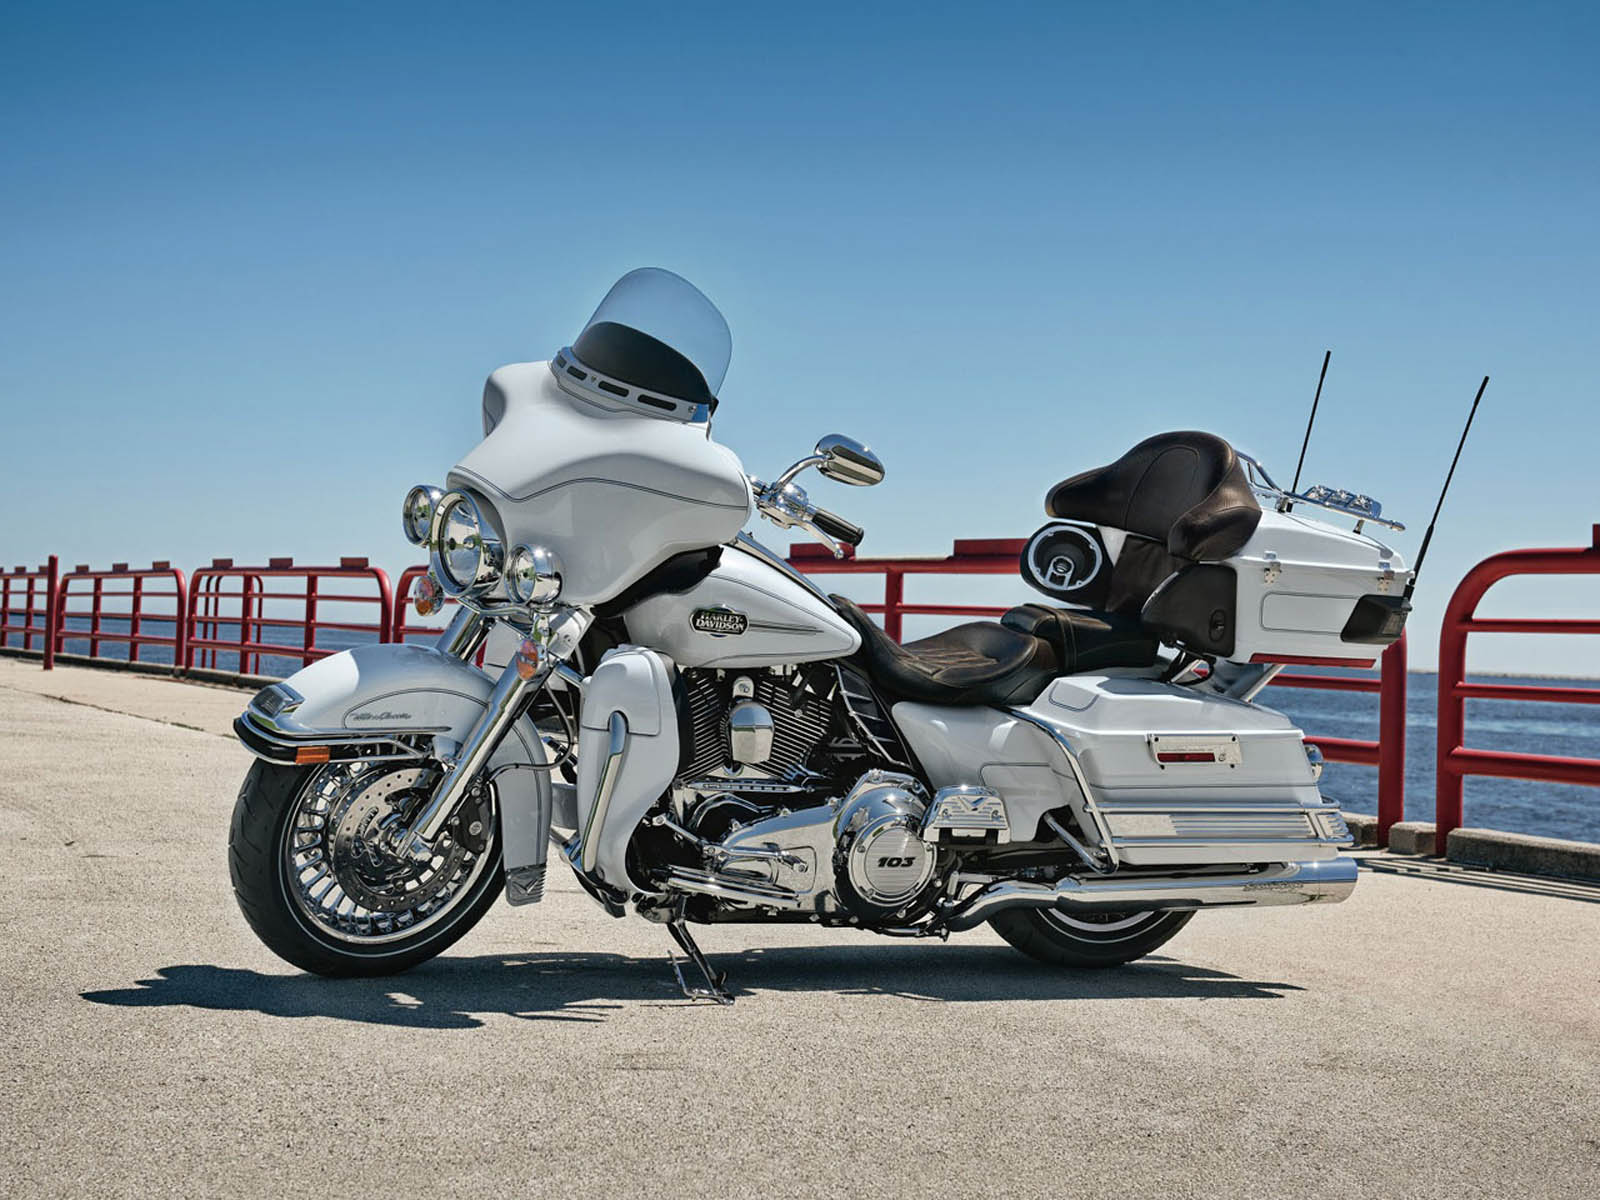 Harley Electra Glide Wallpapers Wallpaper Cave